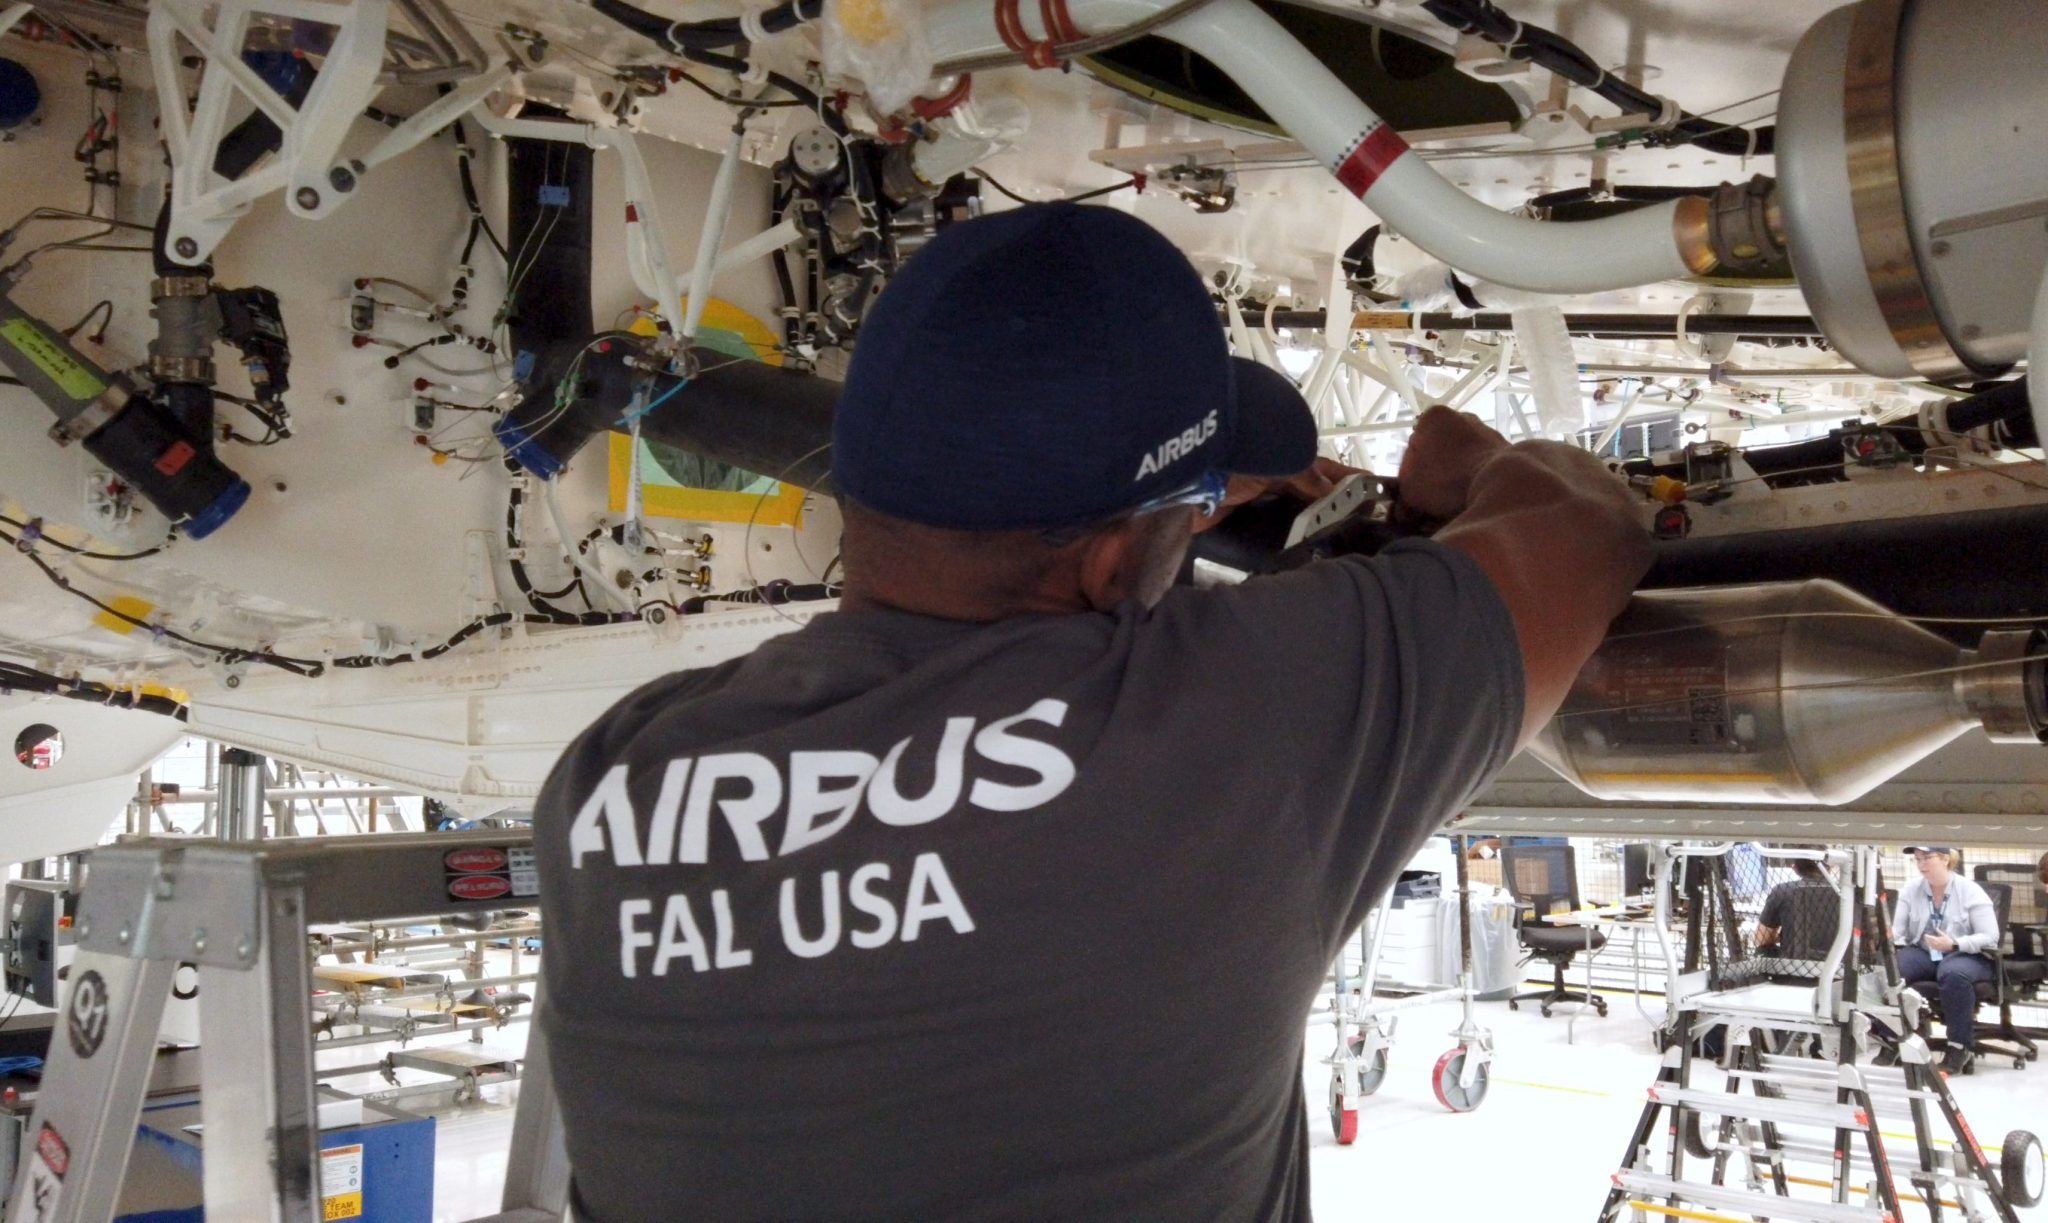 Airbus begins U.S. production of A220